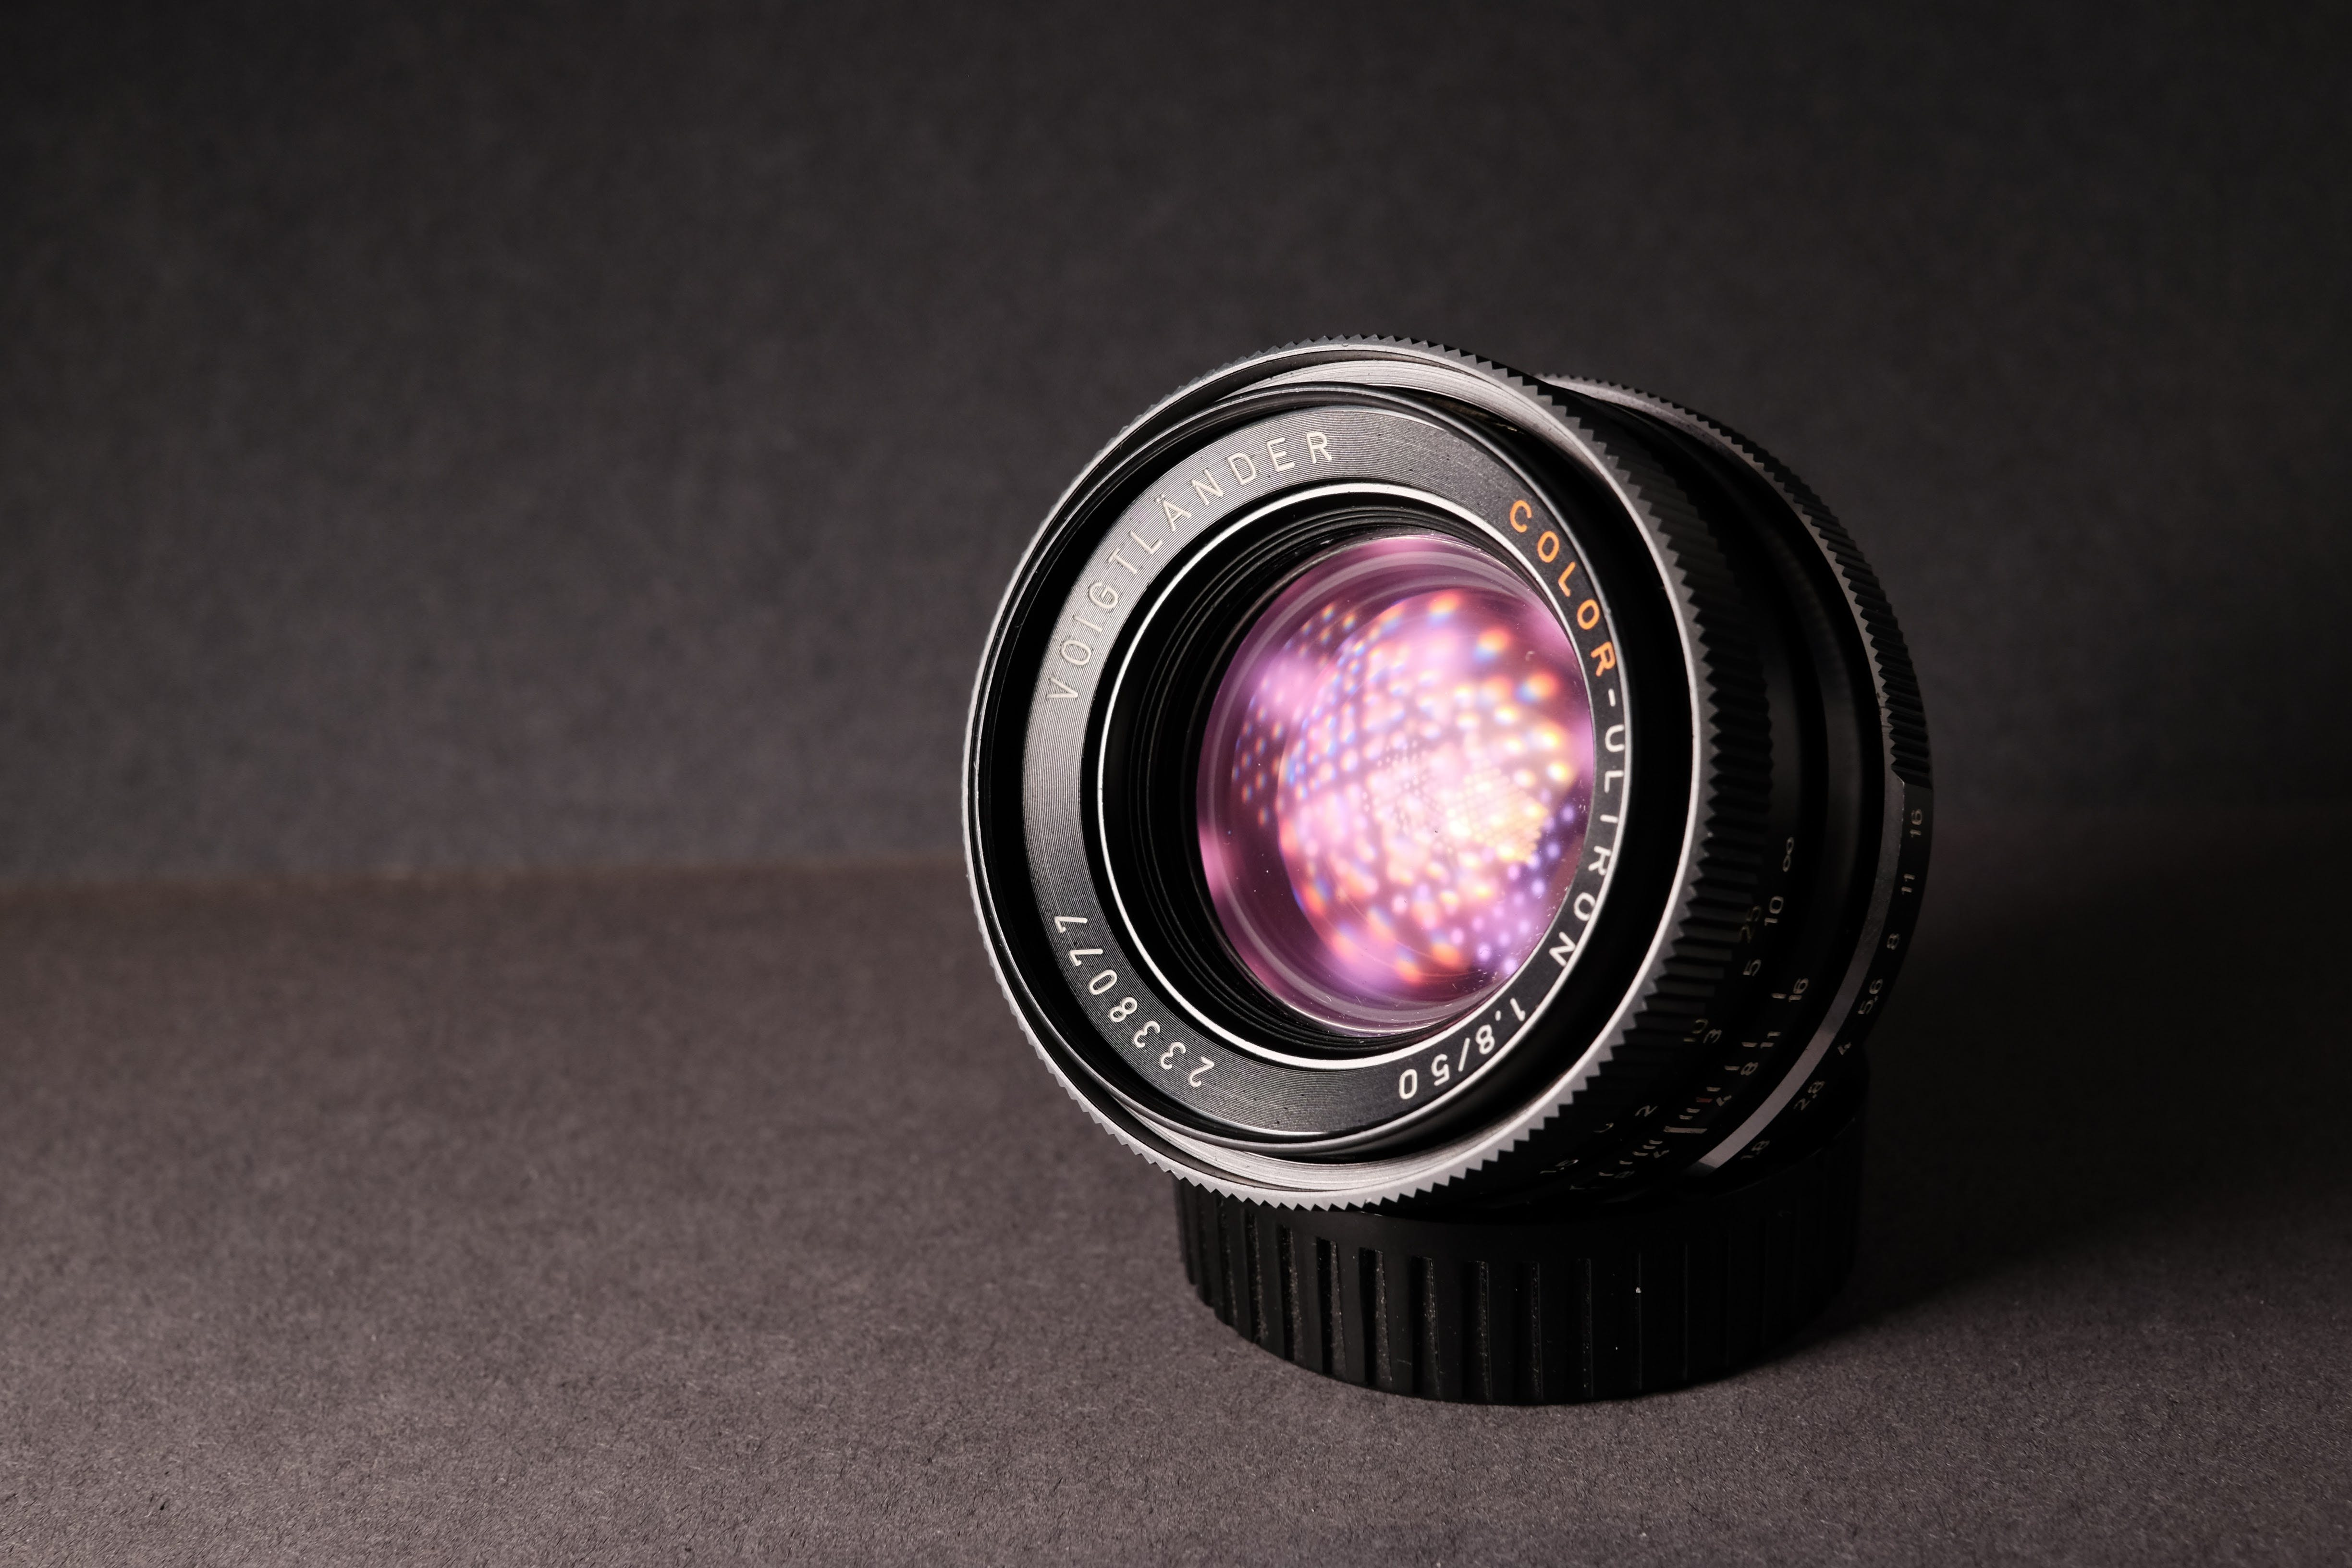 Close-Up Photography of Camera Lens